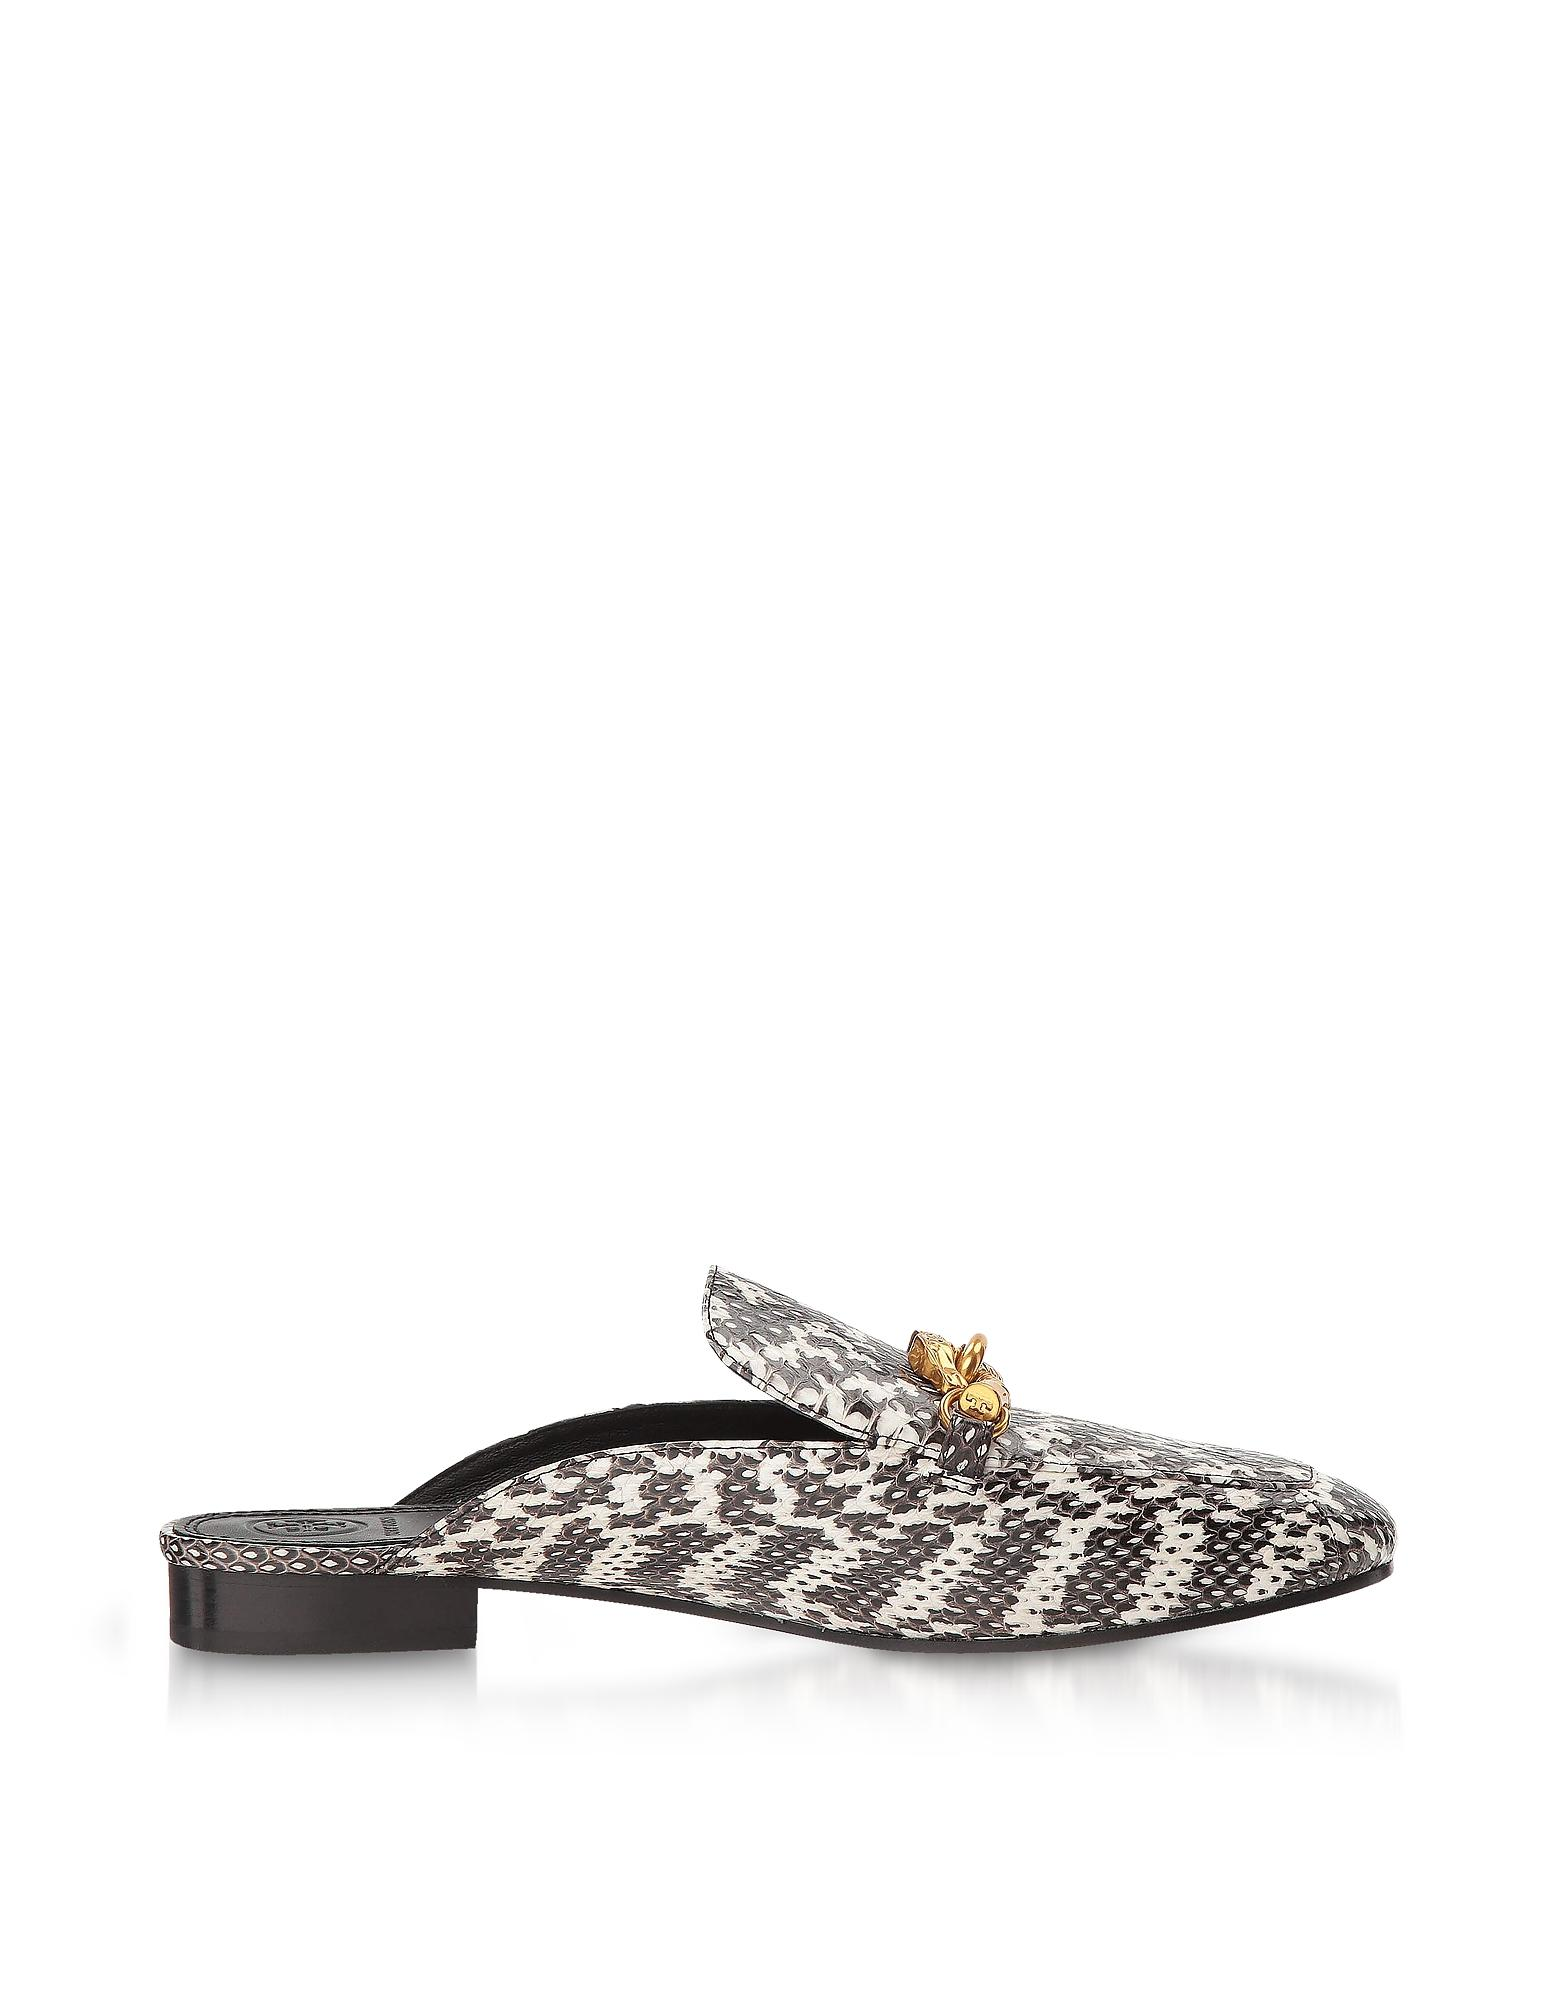 049561d1e Tory Burch. Women s Gray Black And White Roccia Embossed Leather Jessa  Backless Loafer